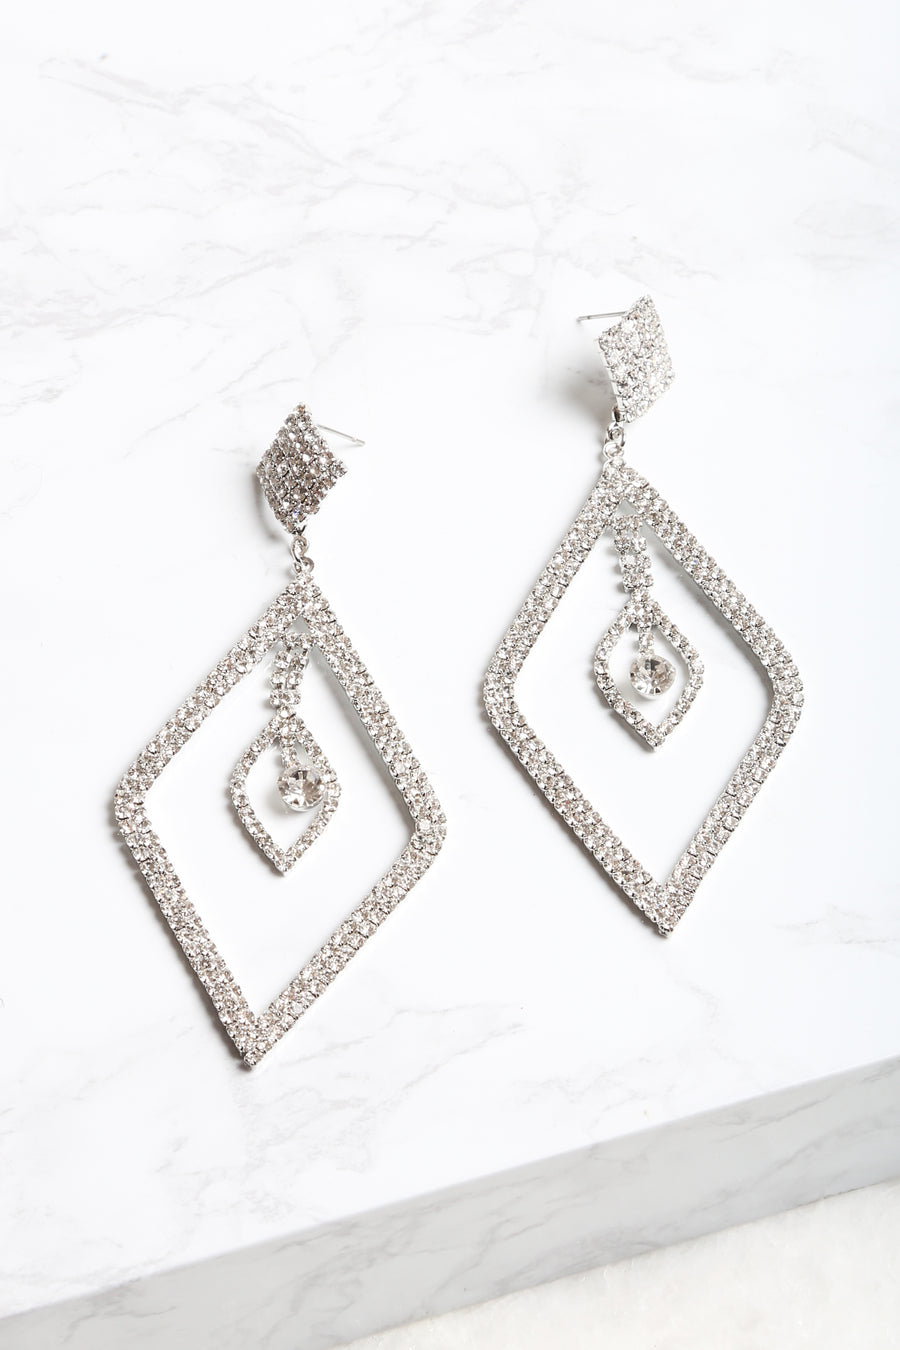 Duchess Diamond Earrings - NEM Fashion Store